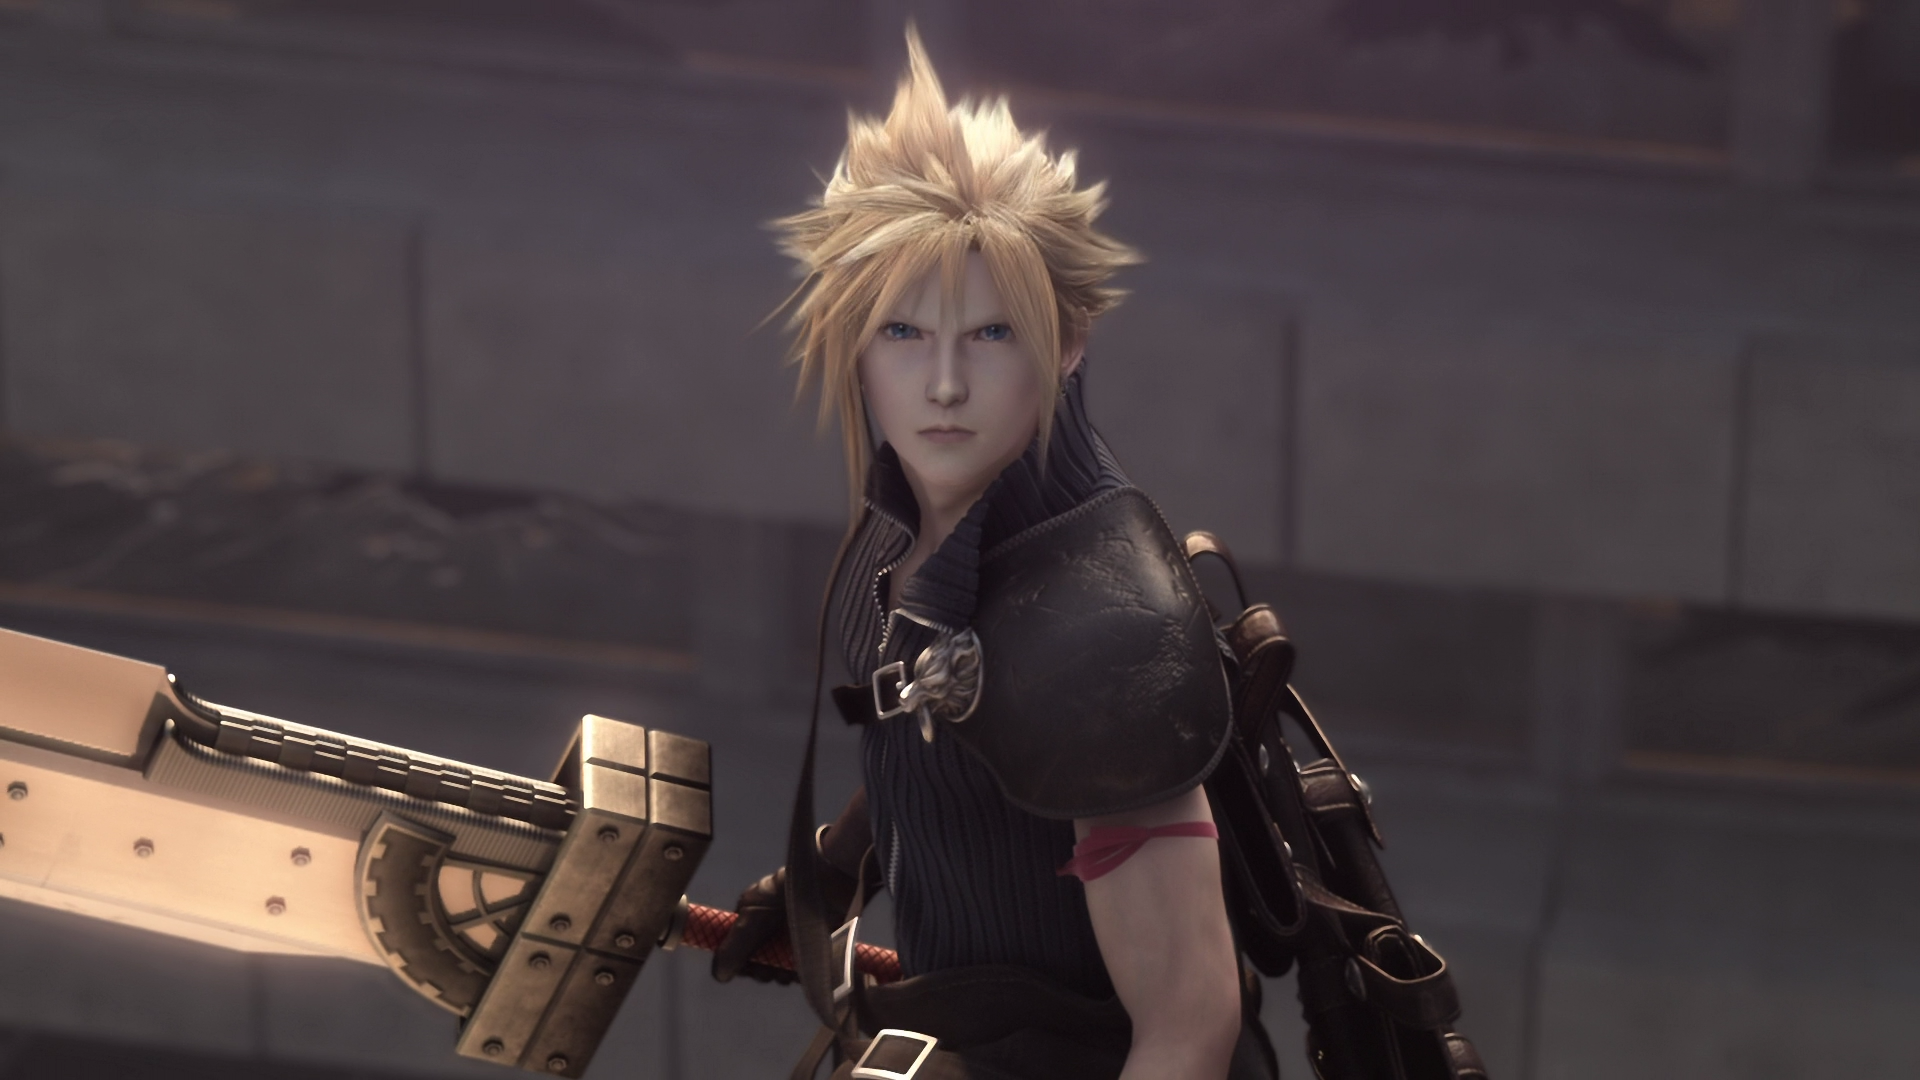 Final Fantasy Vii Remake Will Be A New Creation That Will